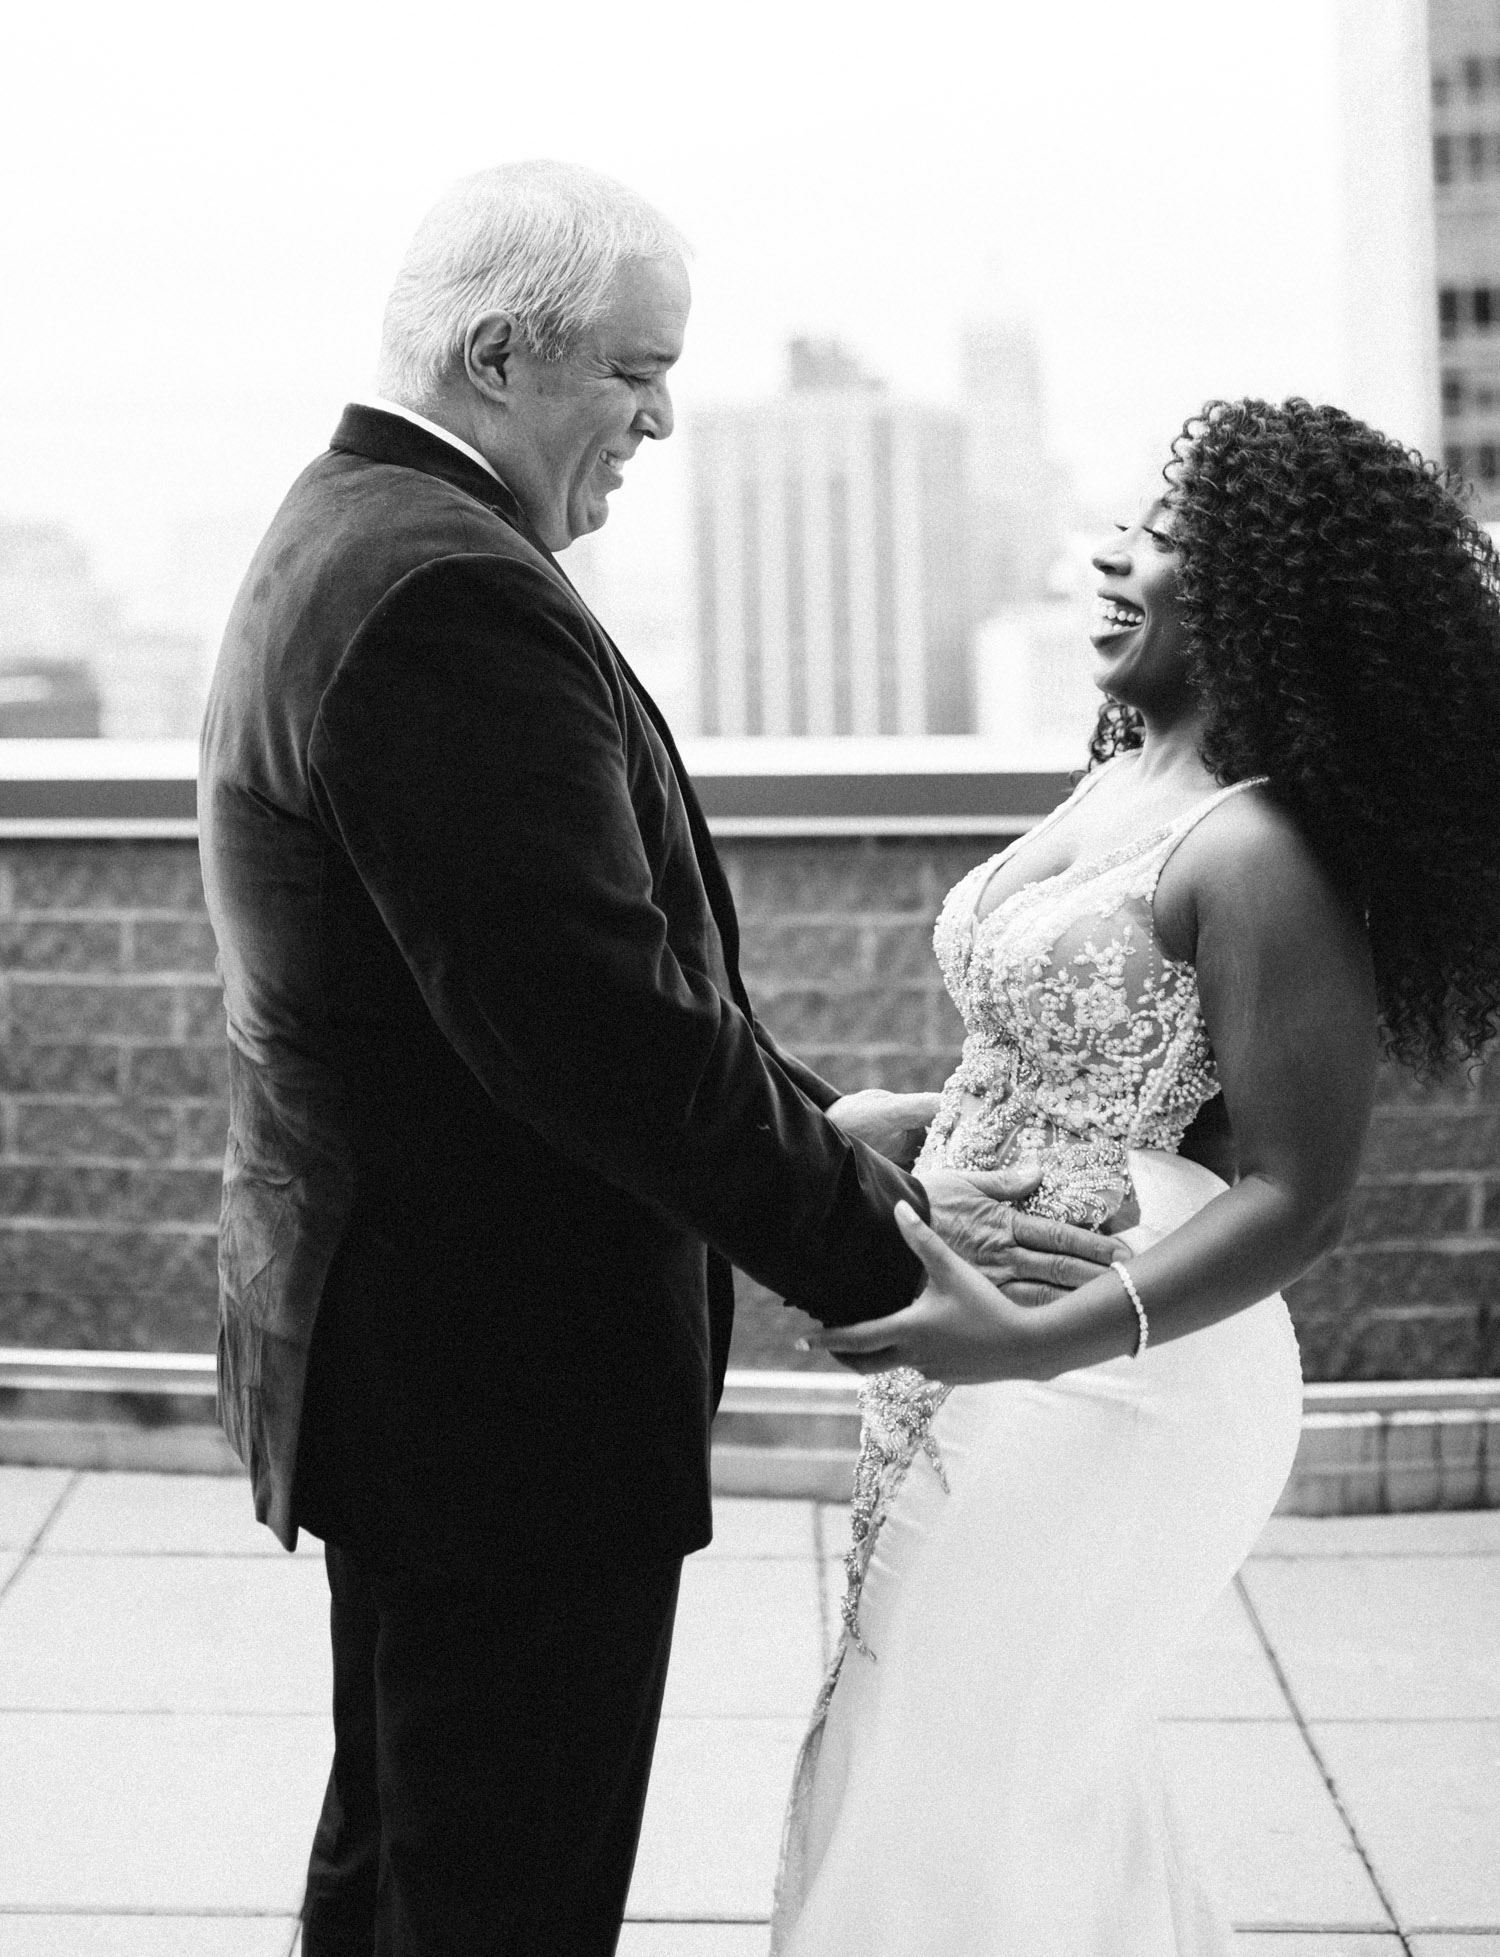 A bride and her father see each other for the first time on her wedding day on a rooftop in Brooklyn, New York